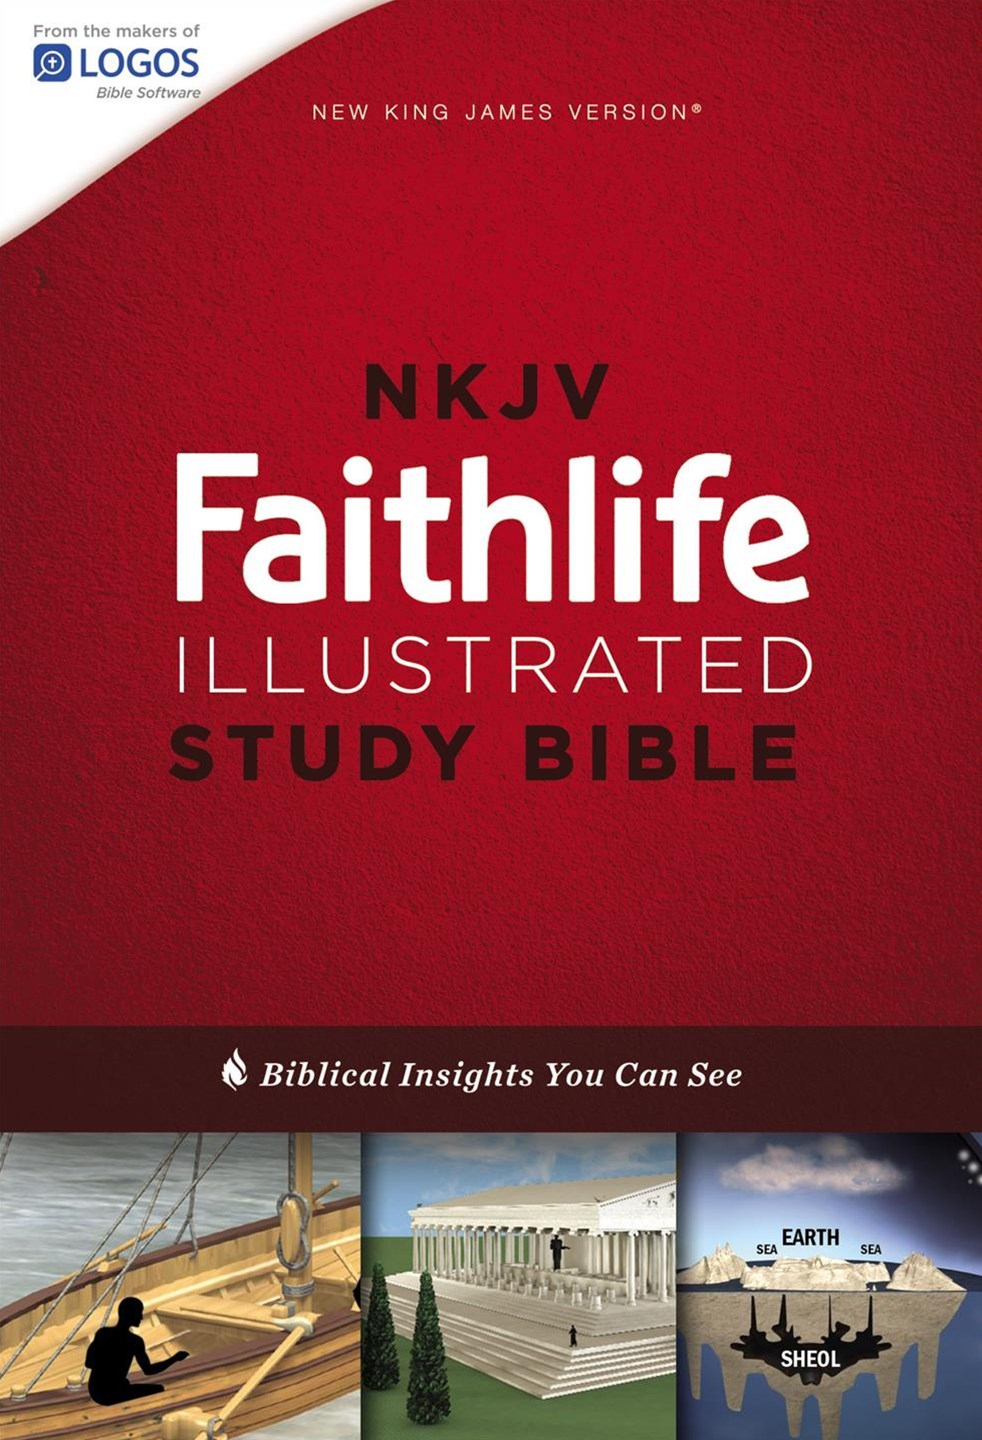 NKJV Faithlife Illustrated Study Bible Red Letter Edition